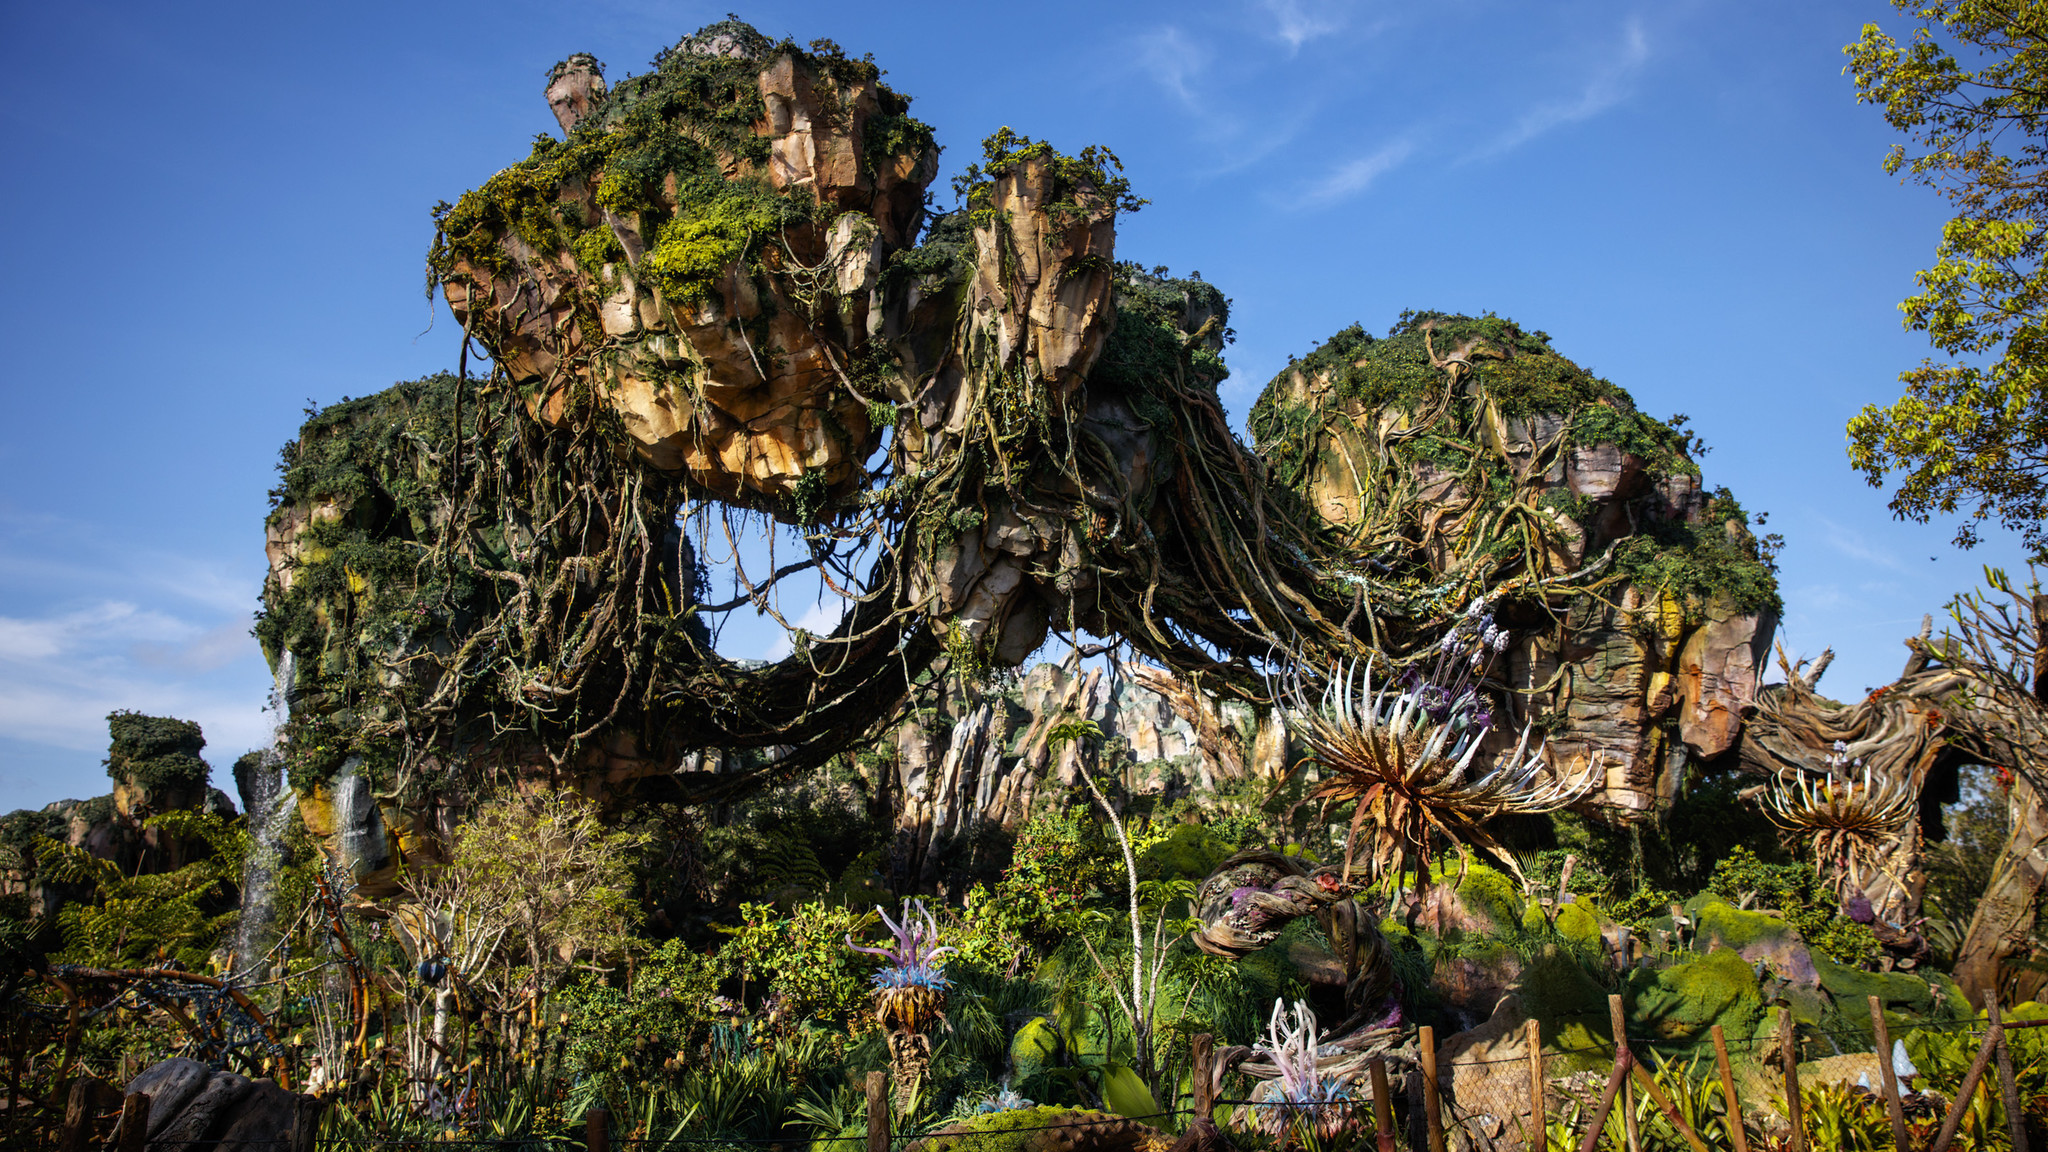 The floating mountains of Pandora.